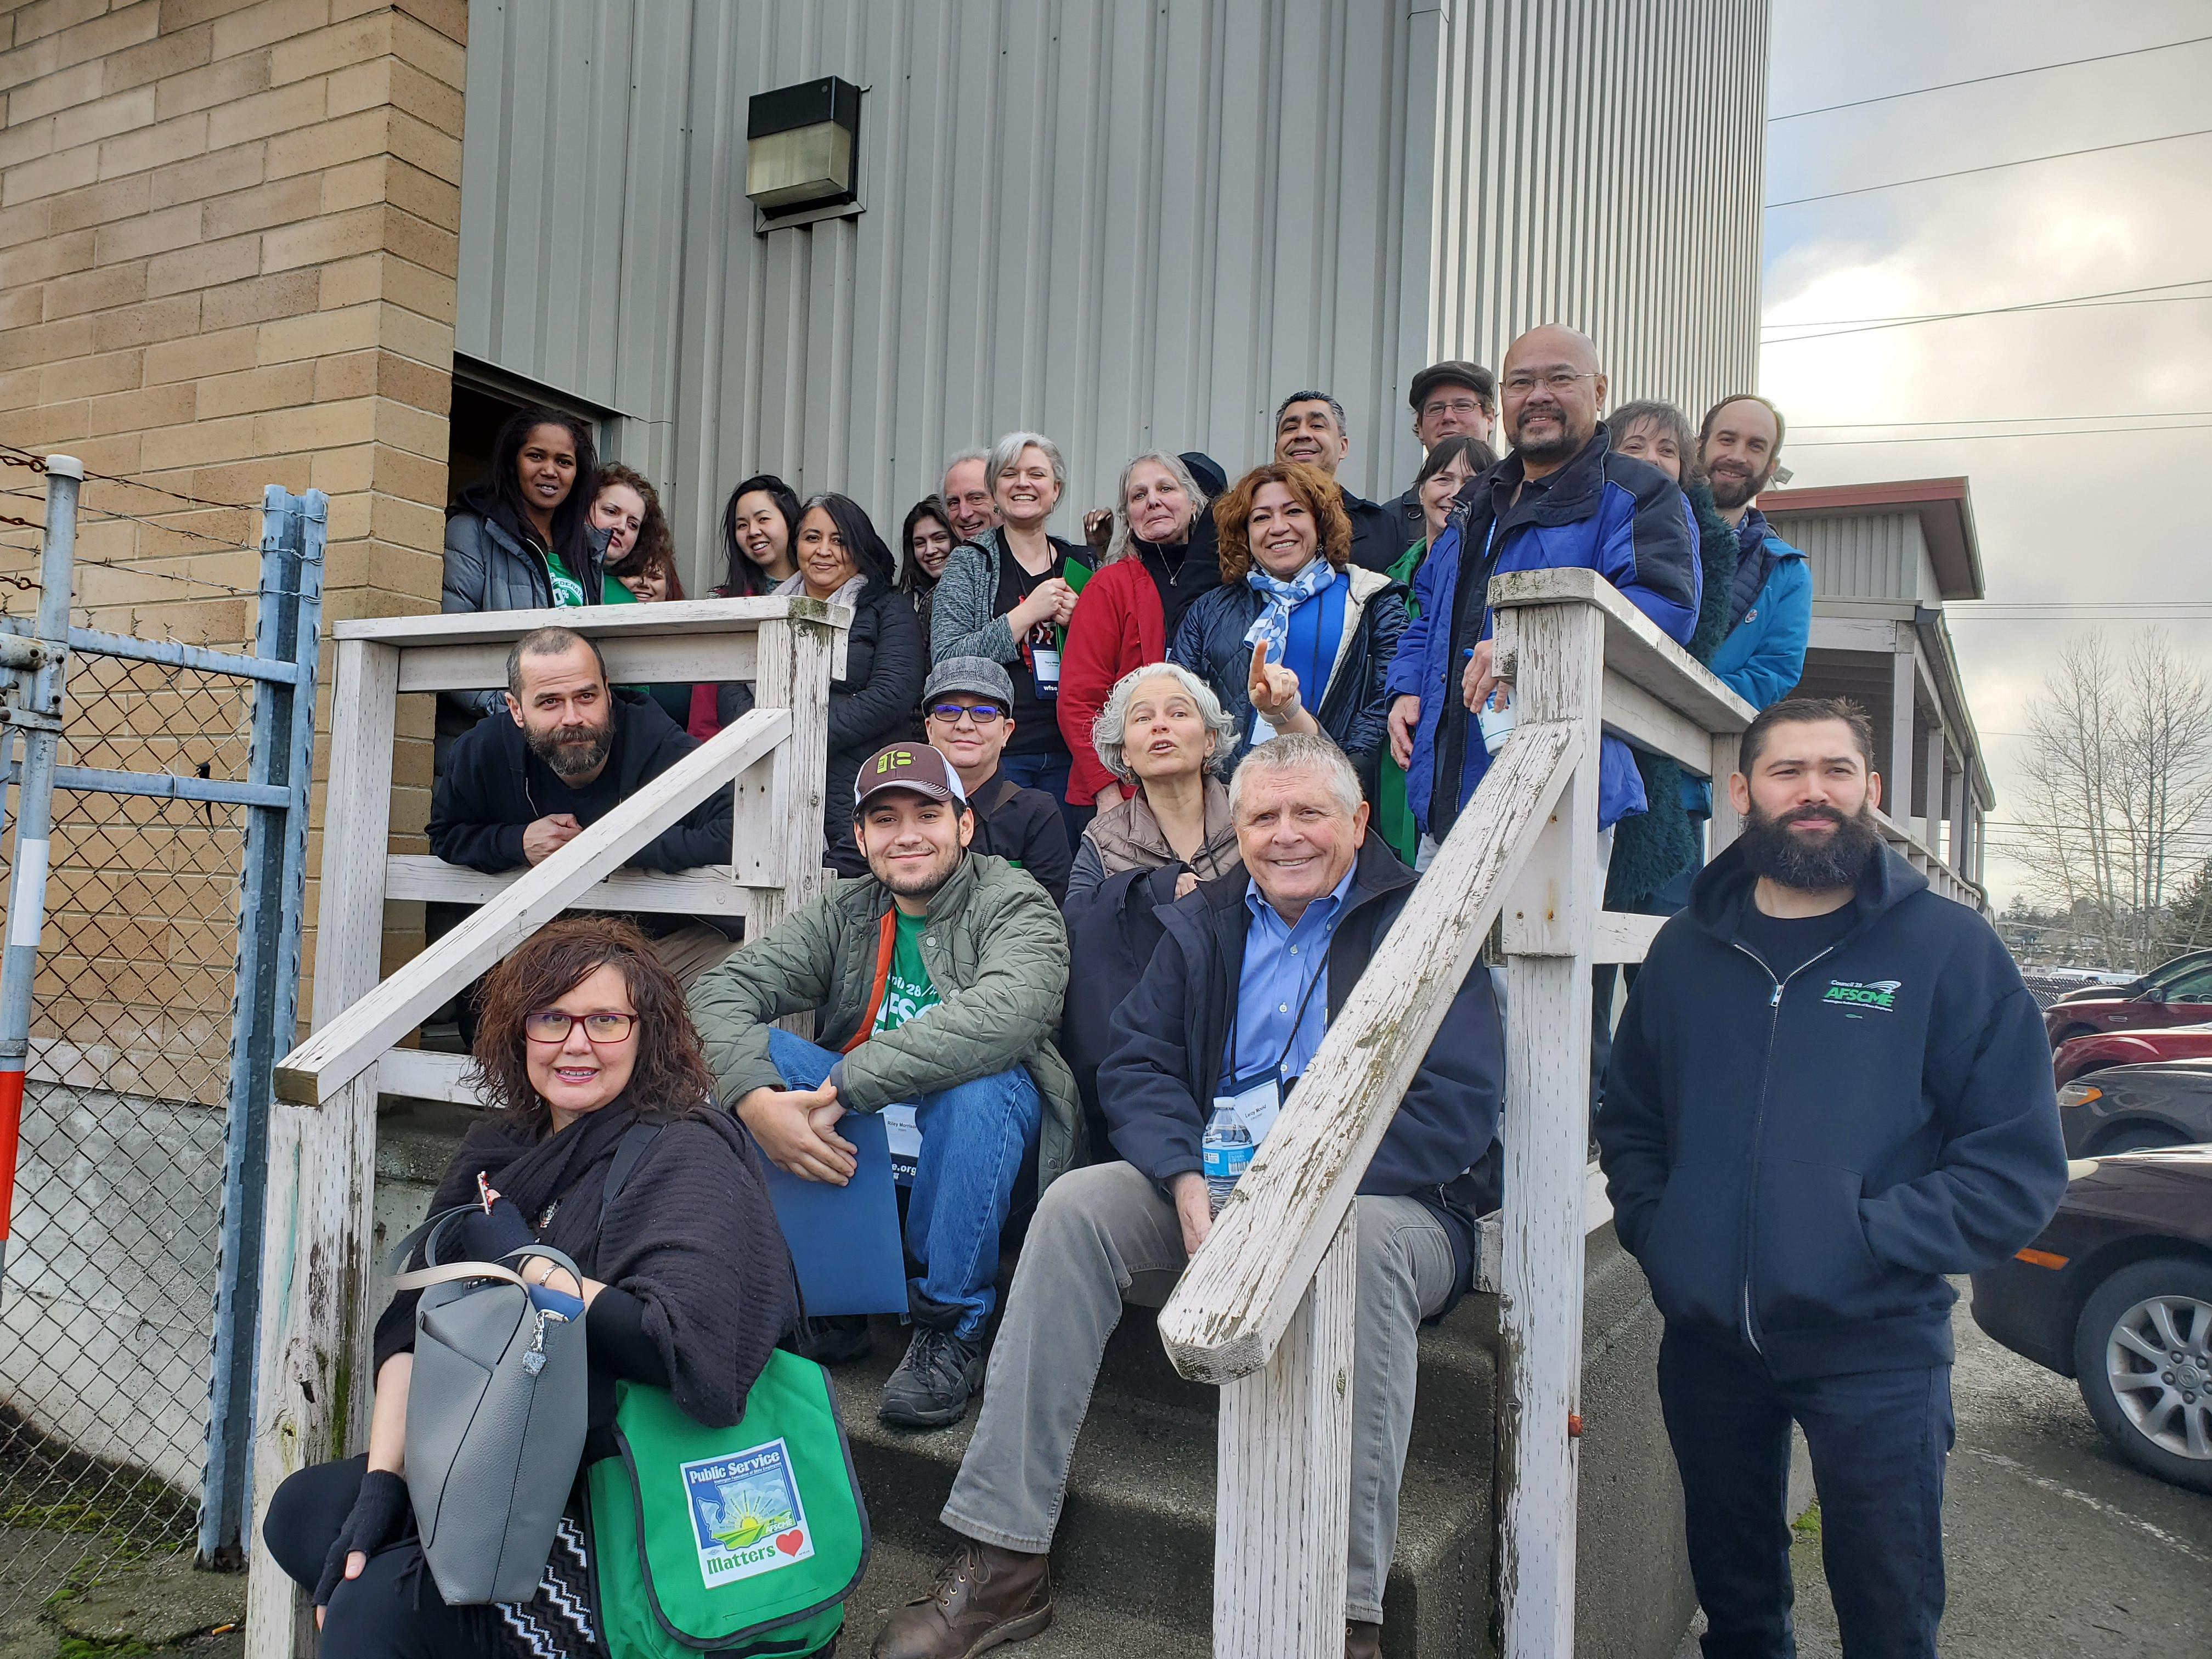 A group of WFSE members and staff gather outside on a cloudy day for a photo during the Interpreters United organizing blitz.